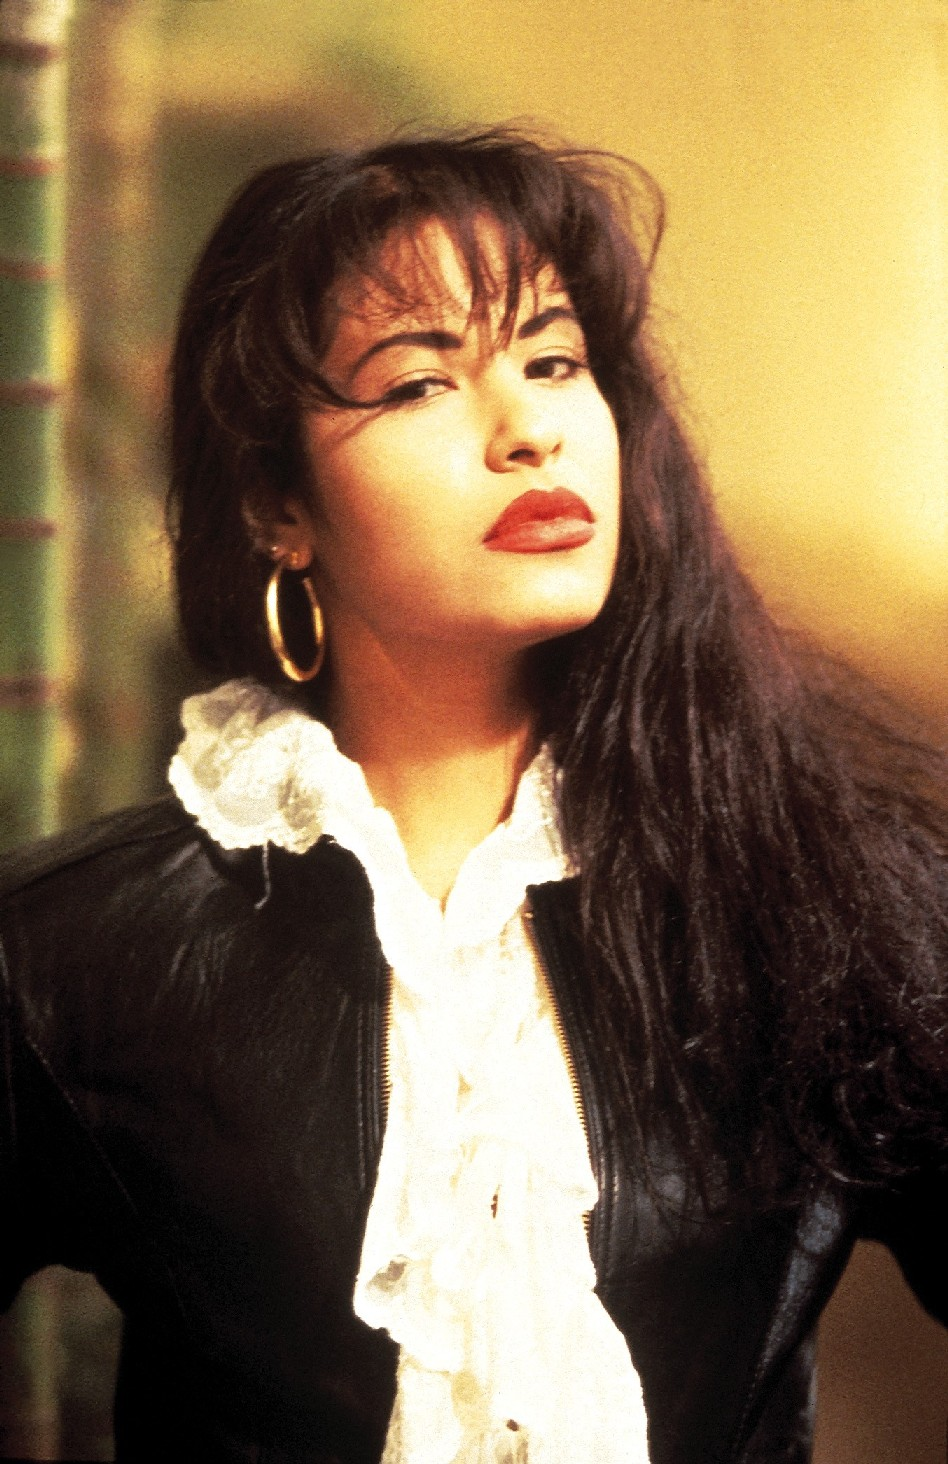 Adventures in the Lone Star State: Selena and the Tejano Culture